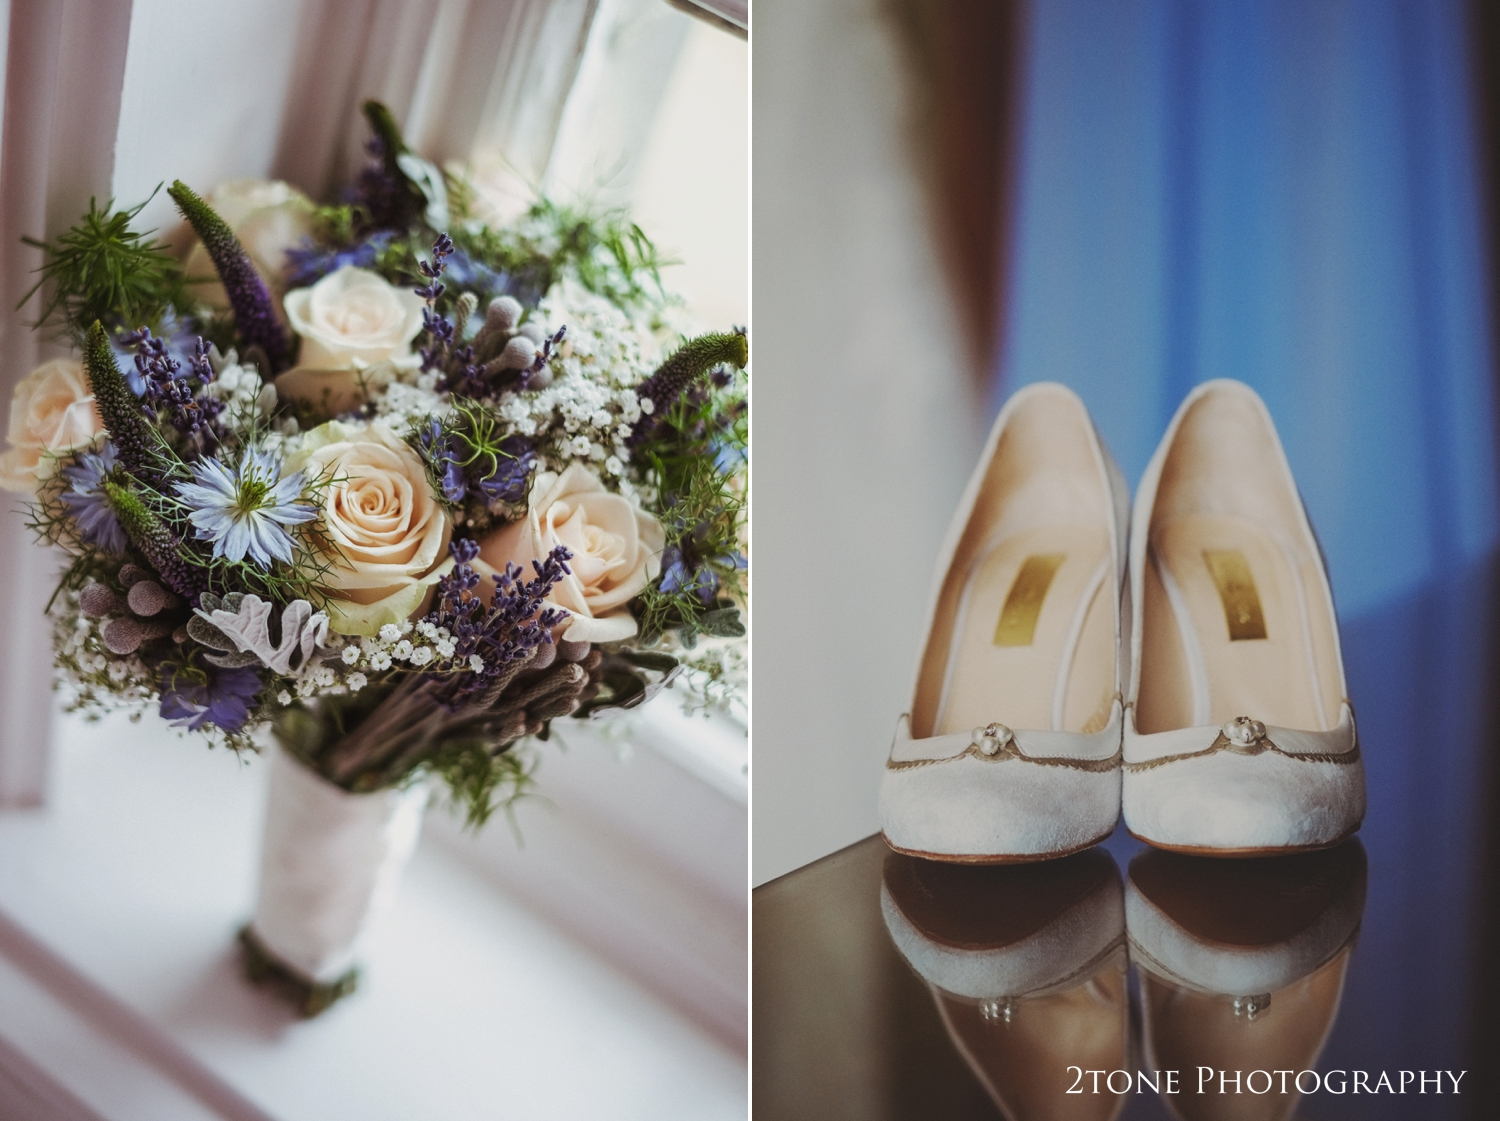 Natalie chose tones ofbeautiful cornflower blue for her bouquet and bridesmaids dresses keeping within the theme of the day.